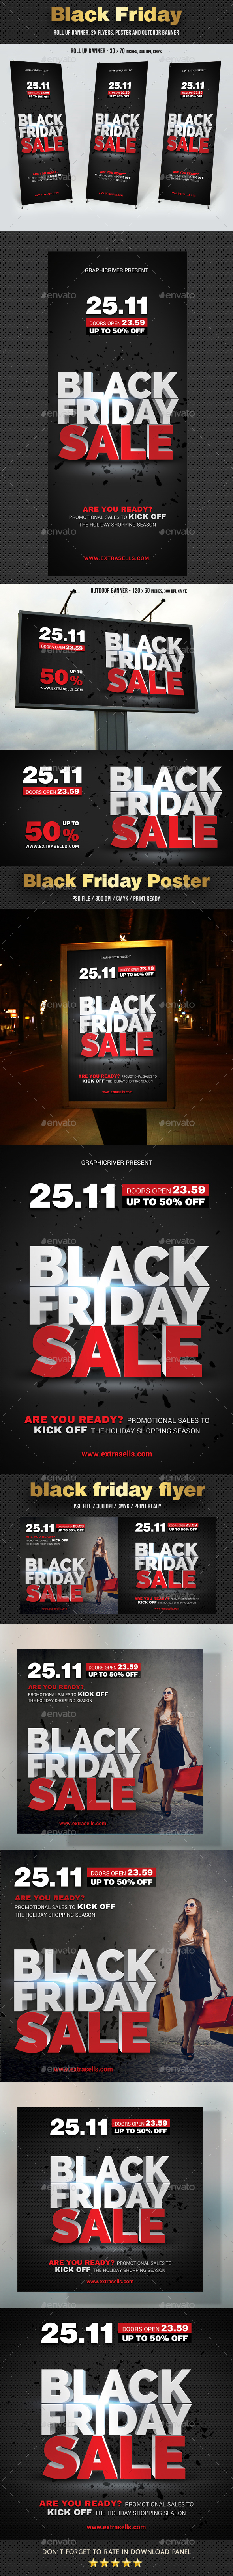 GraphicRiver Black Friday Sale Bundle 2 21032543